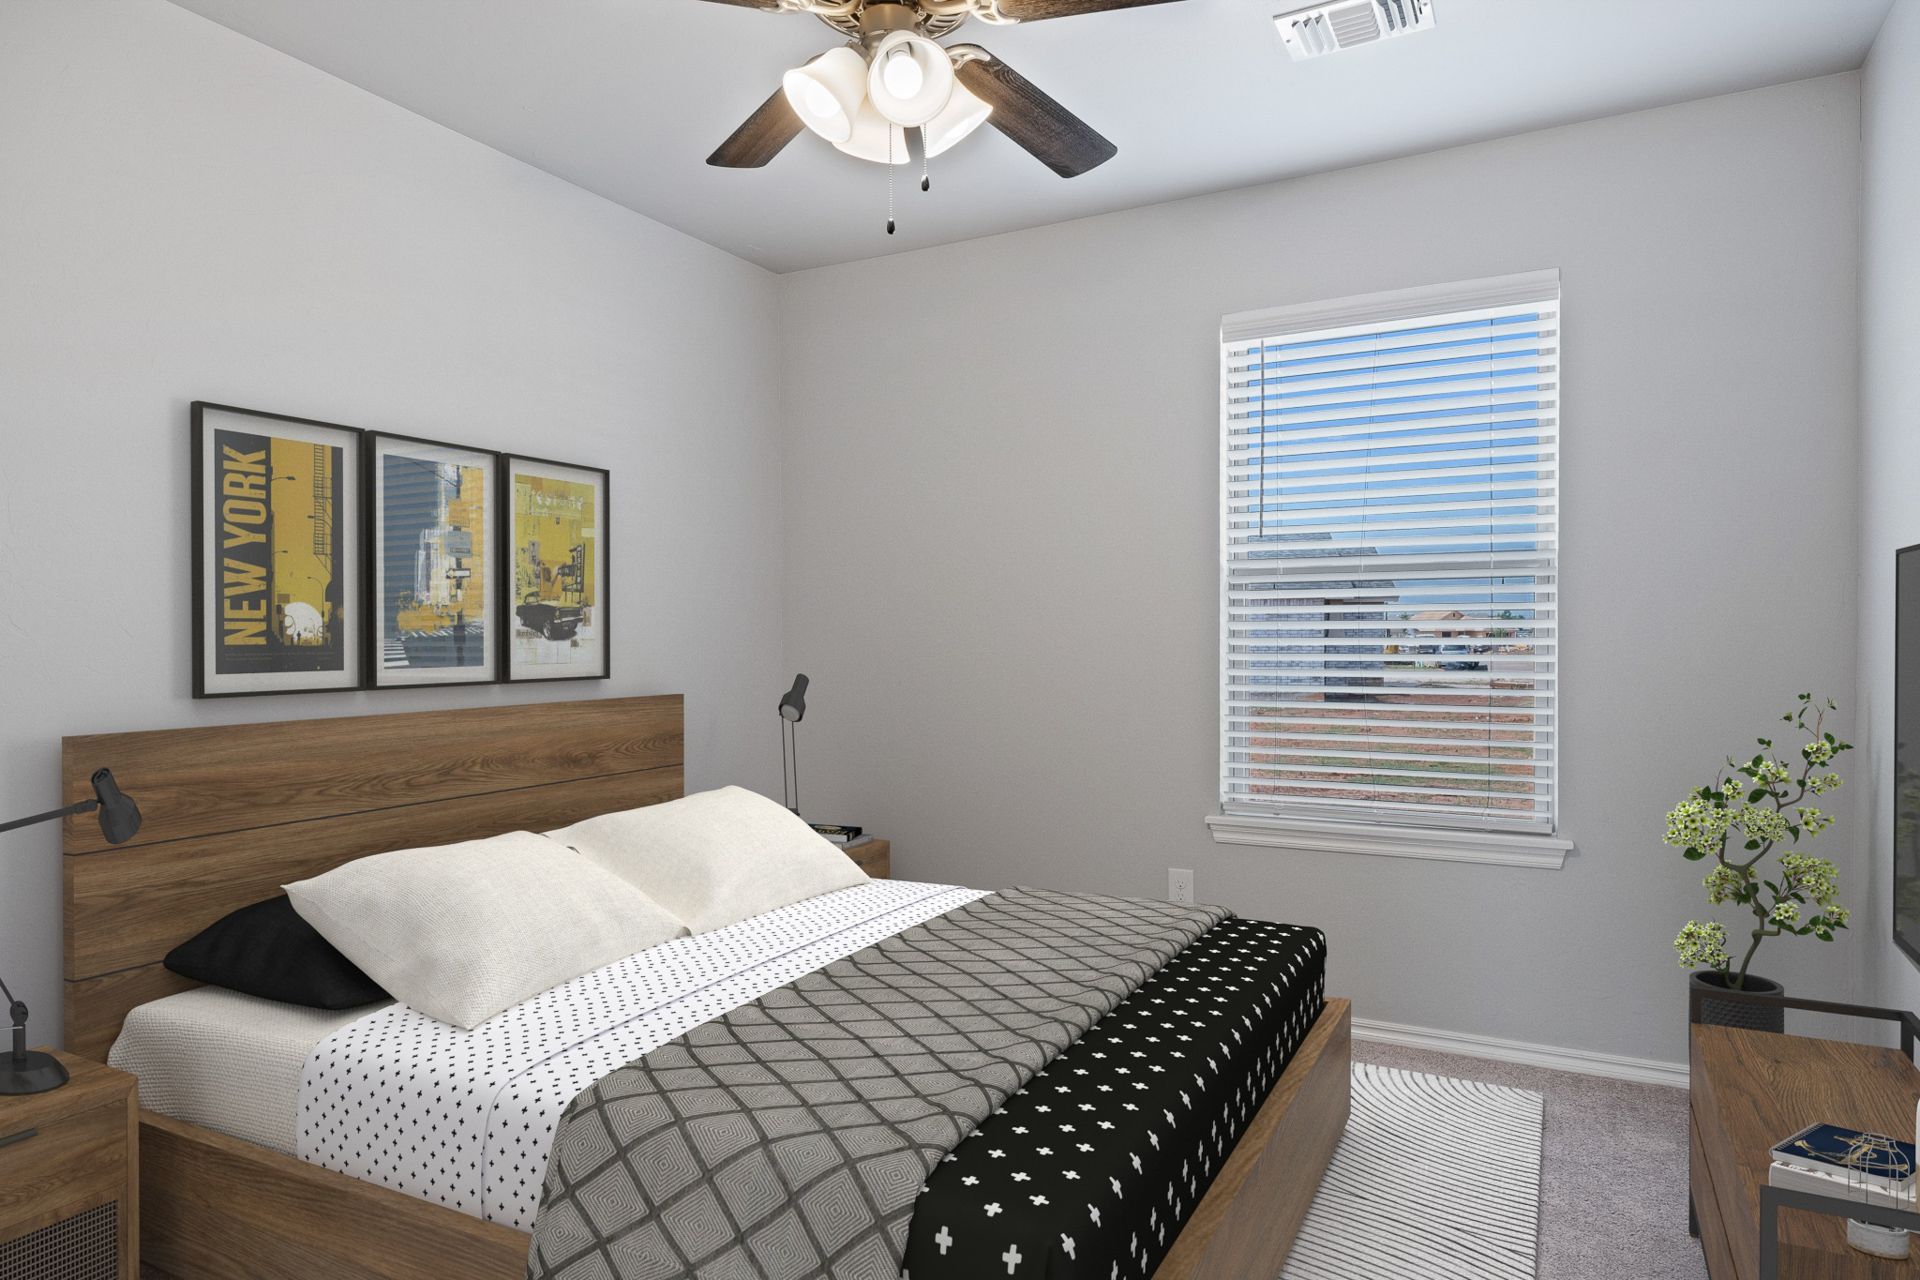 Bedroom featured in the Gabriella By Ideal Homes in Oklahoma City, OK